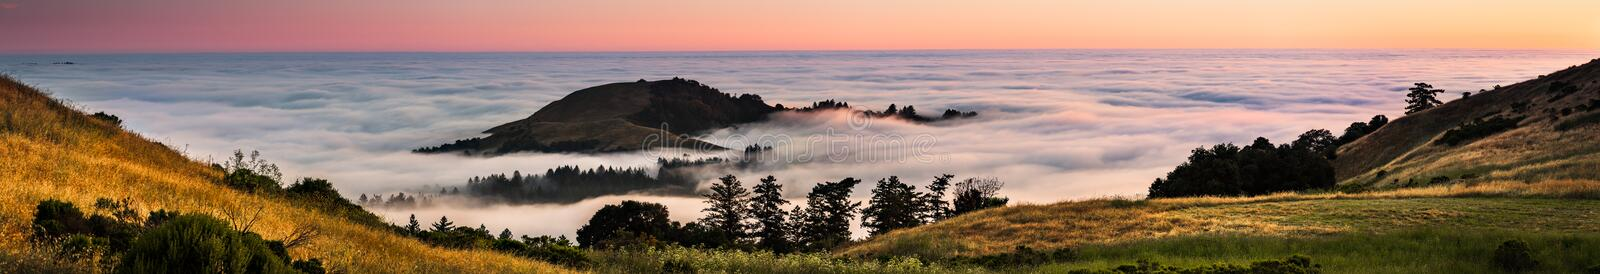 Panoramic view at sunset of valley covered in a sea of clouds in the Santa Cruz mountains, San Francisco bay area, California stock photo